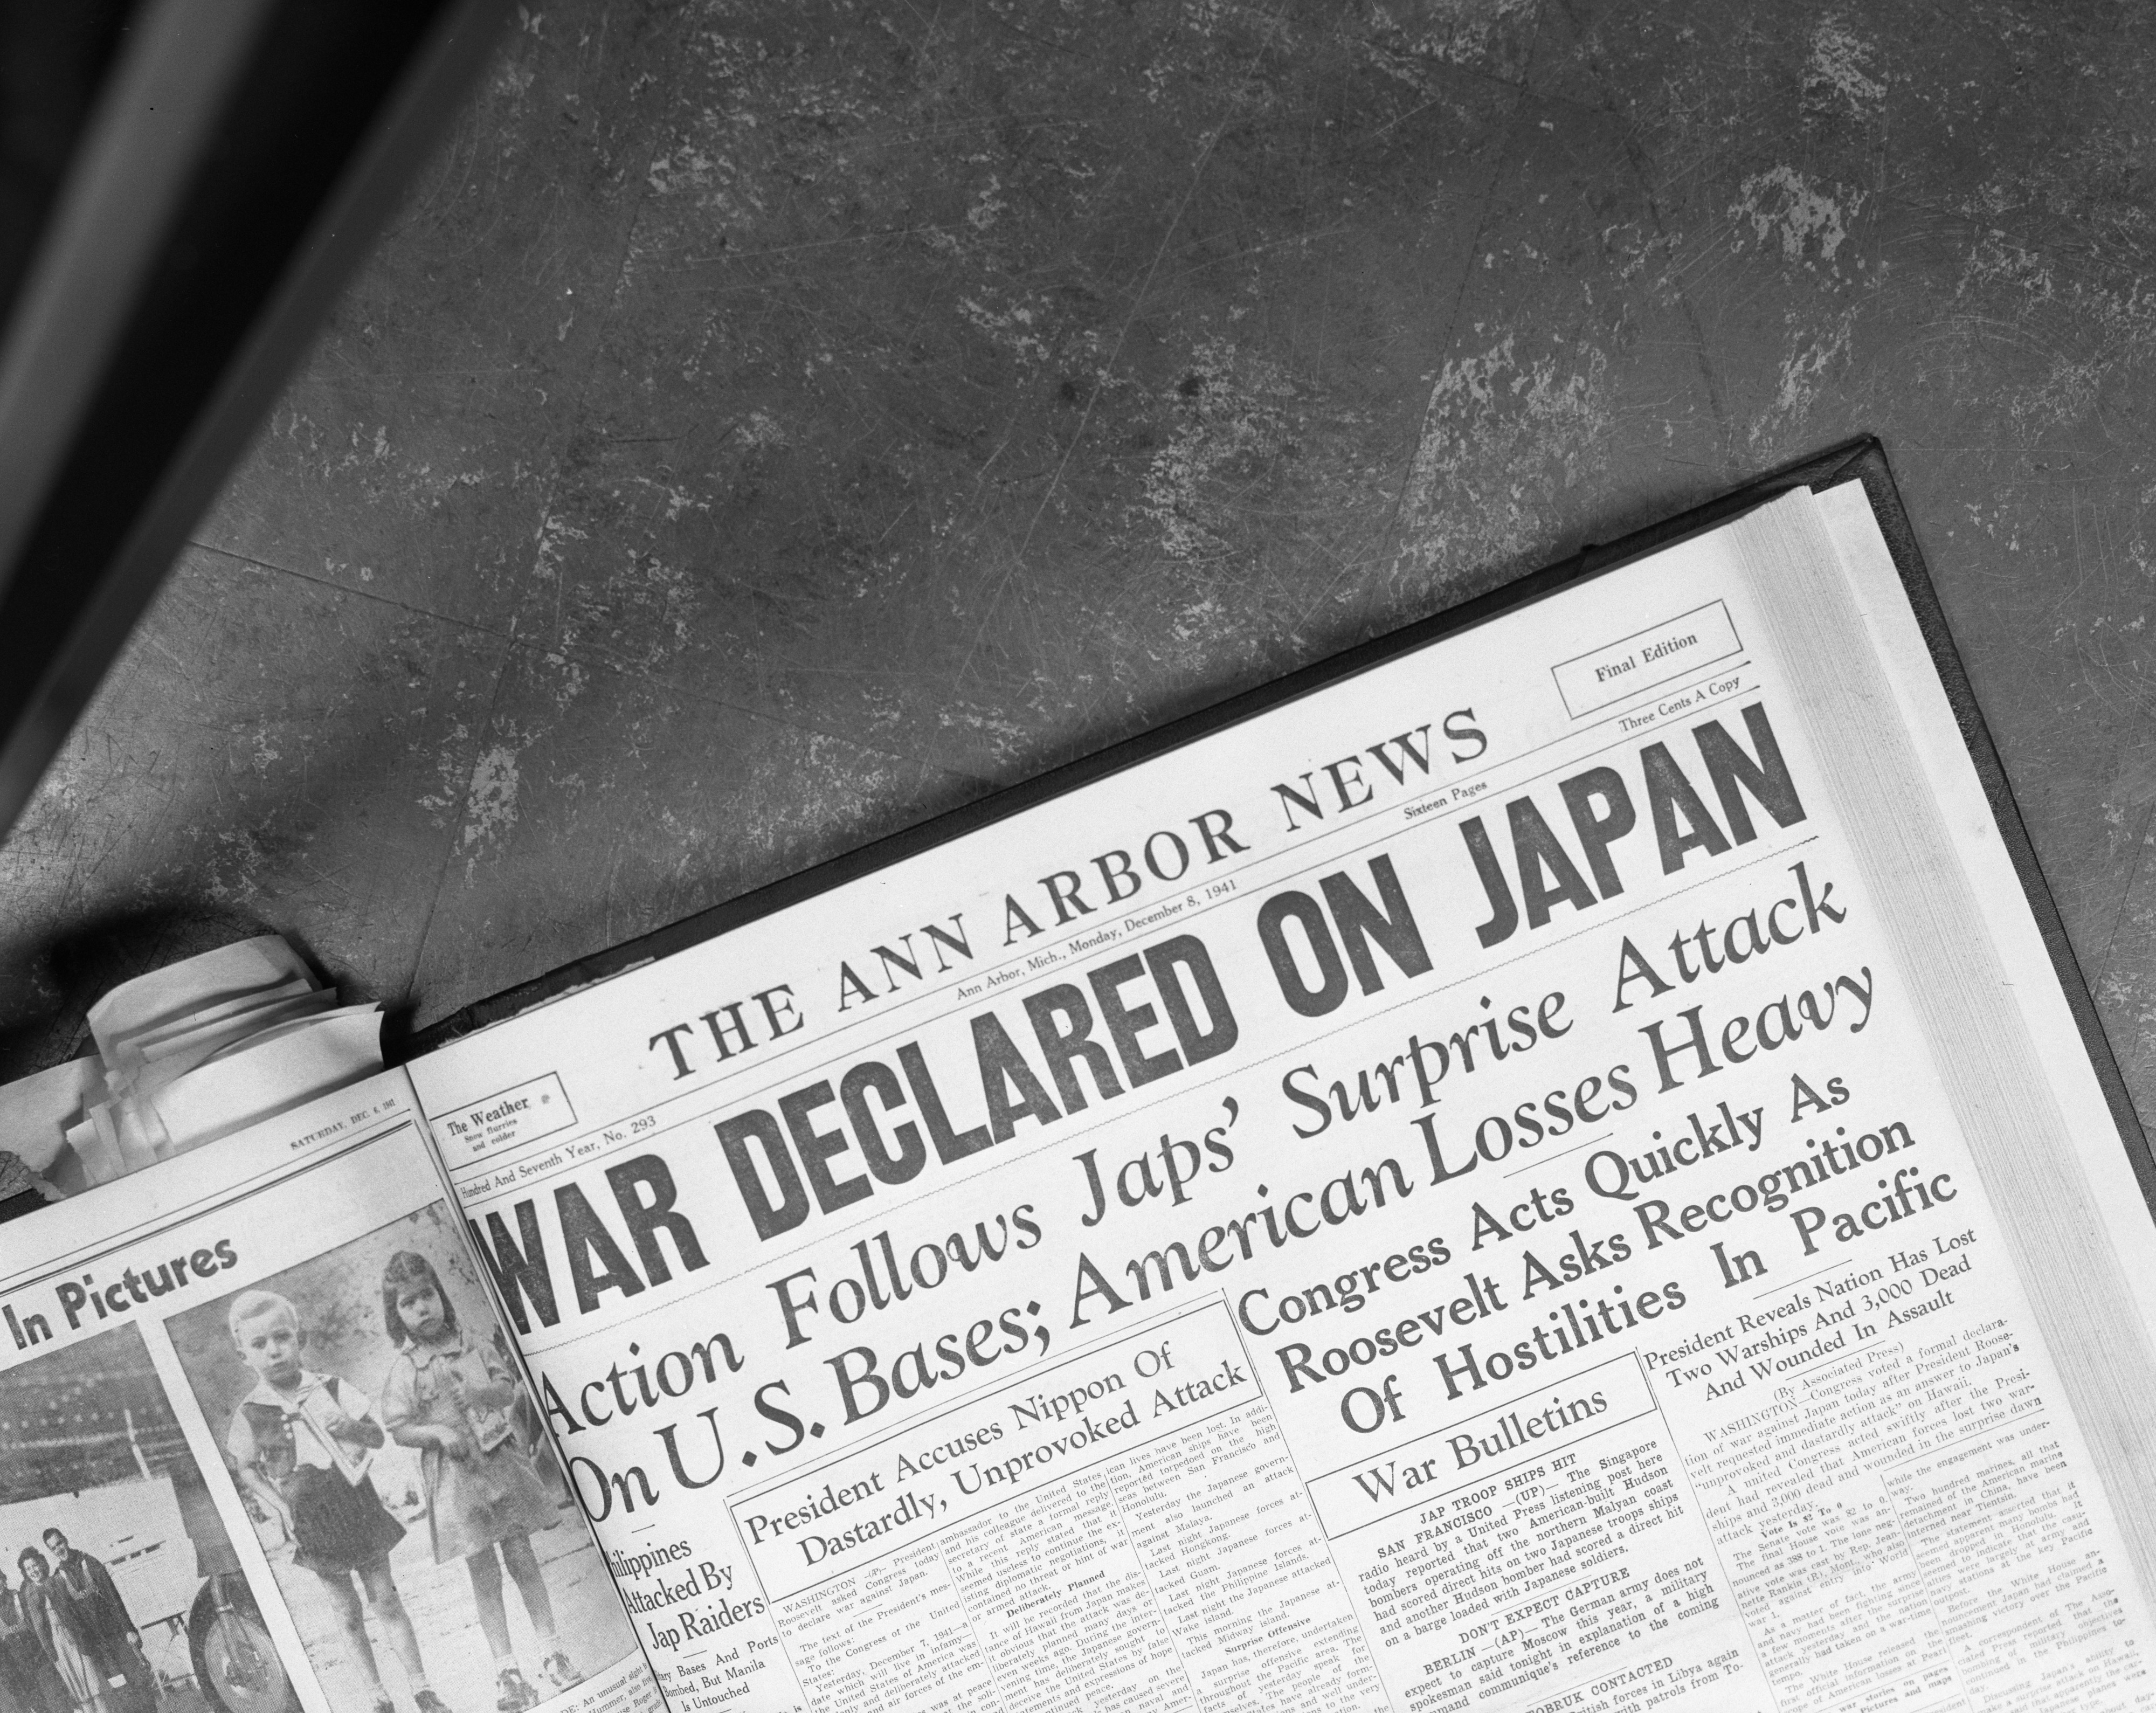 Front page of the December 8, 1941 issue of the Ann Arbor News with headline about Pearl Harbor, October 1966 image